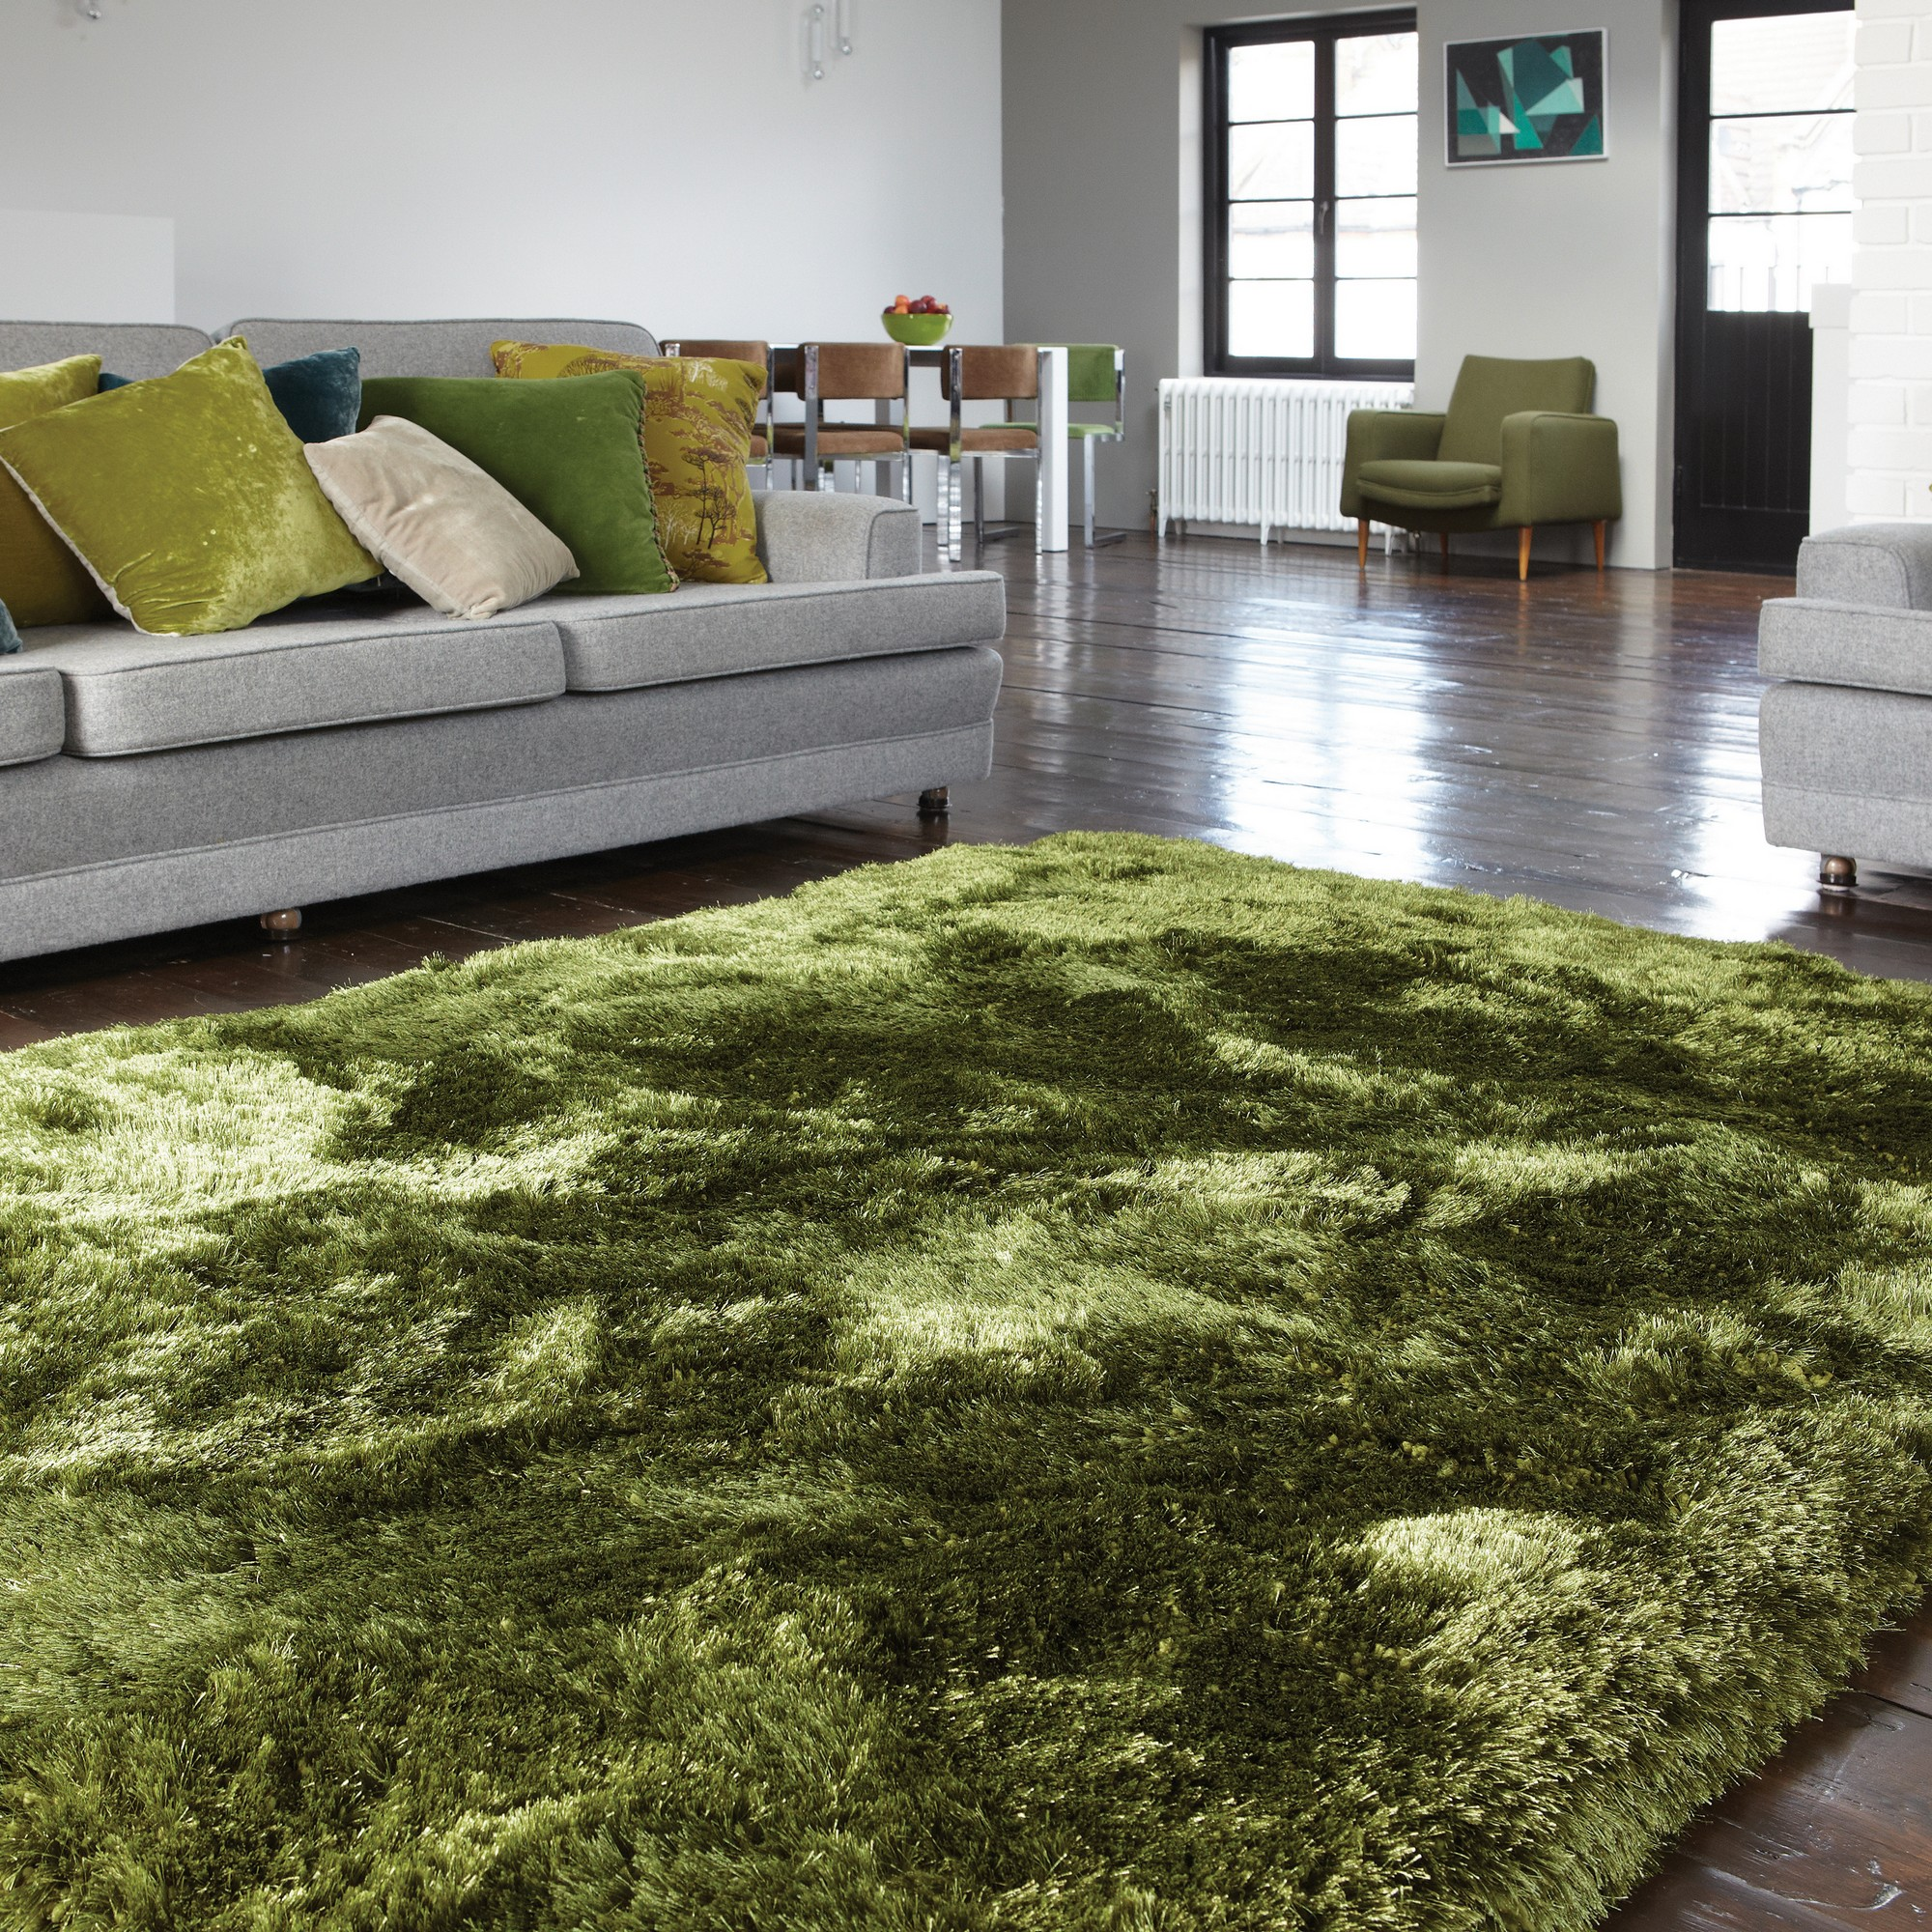 Plush Dusk Rug: Plush Shaggy Rugs In Ocean Buy Online From The Rug Seller Uk